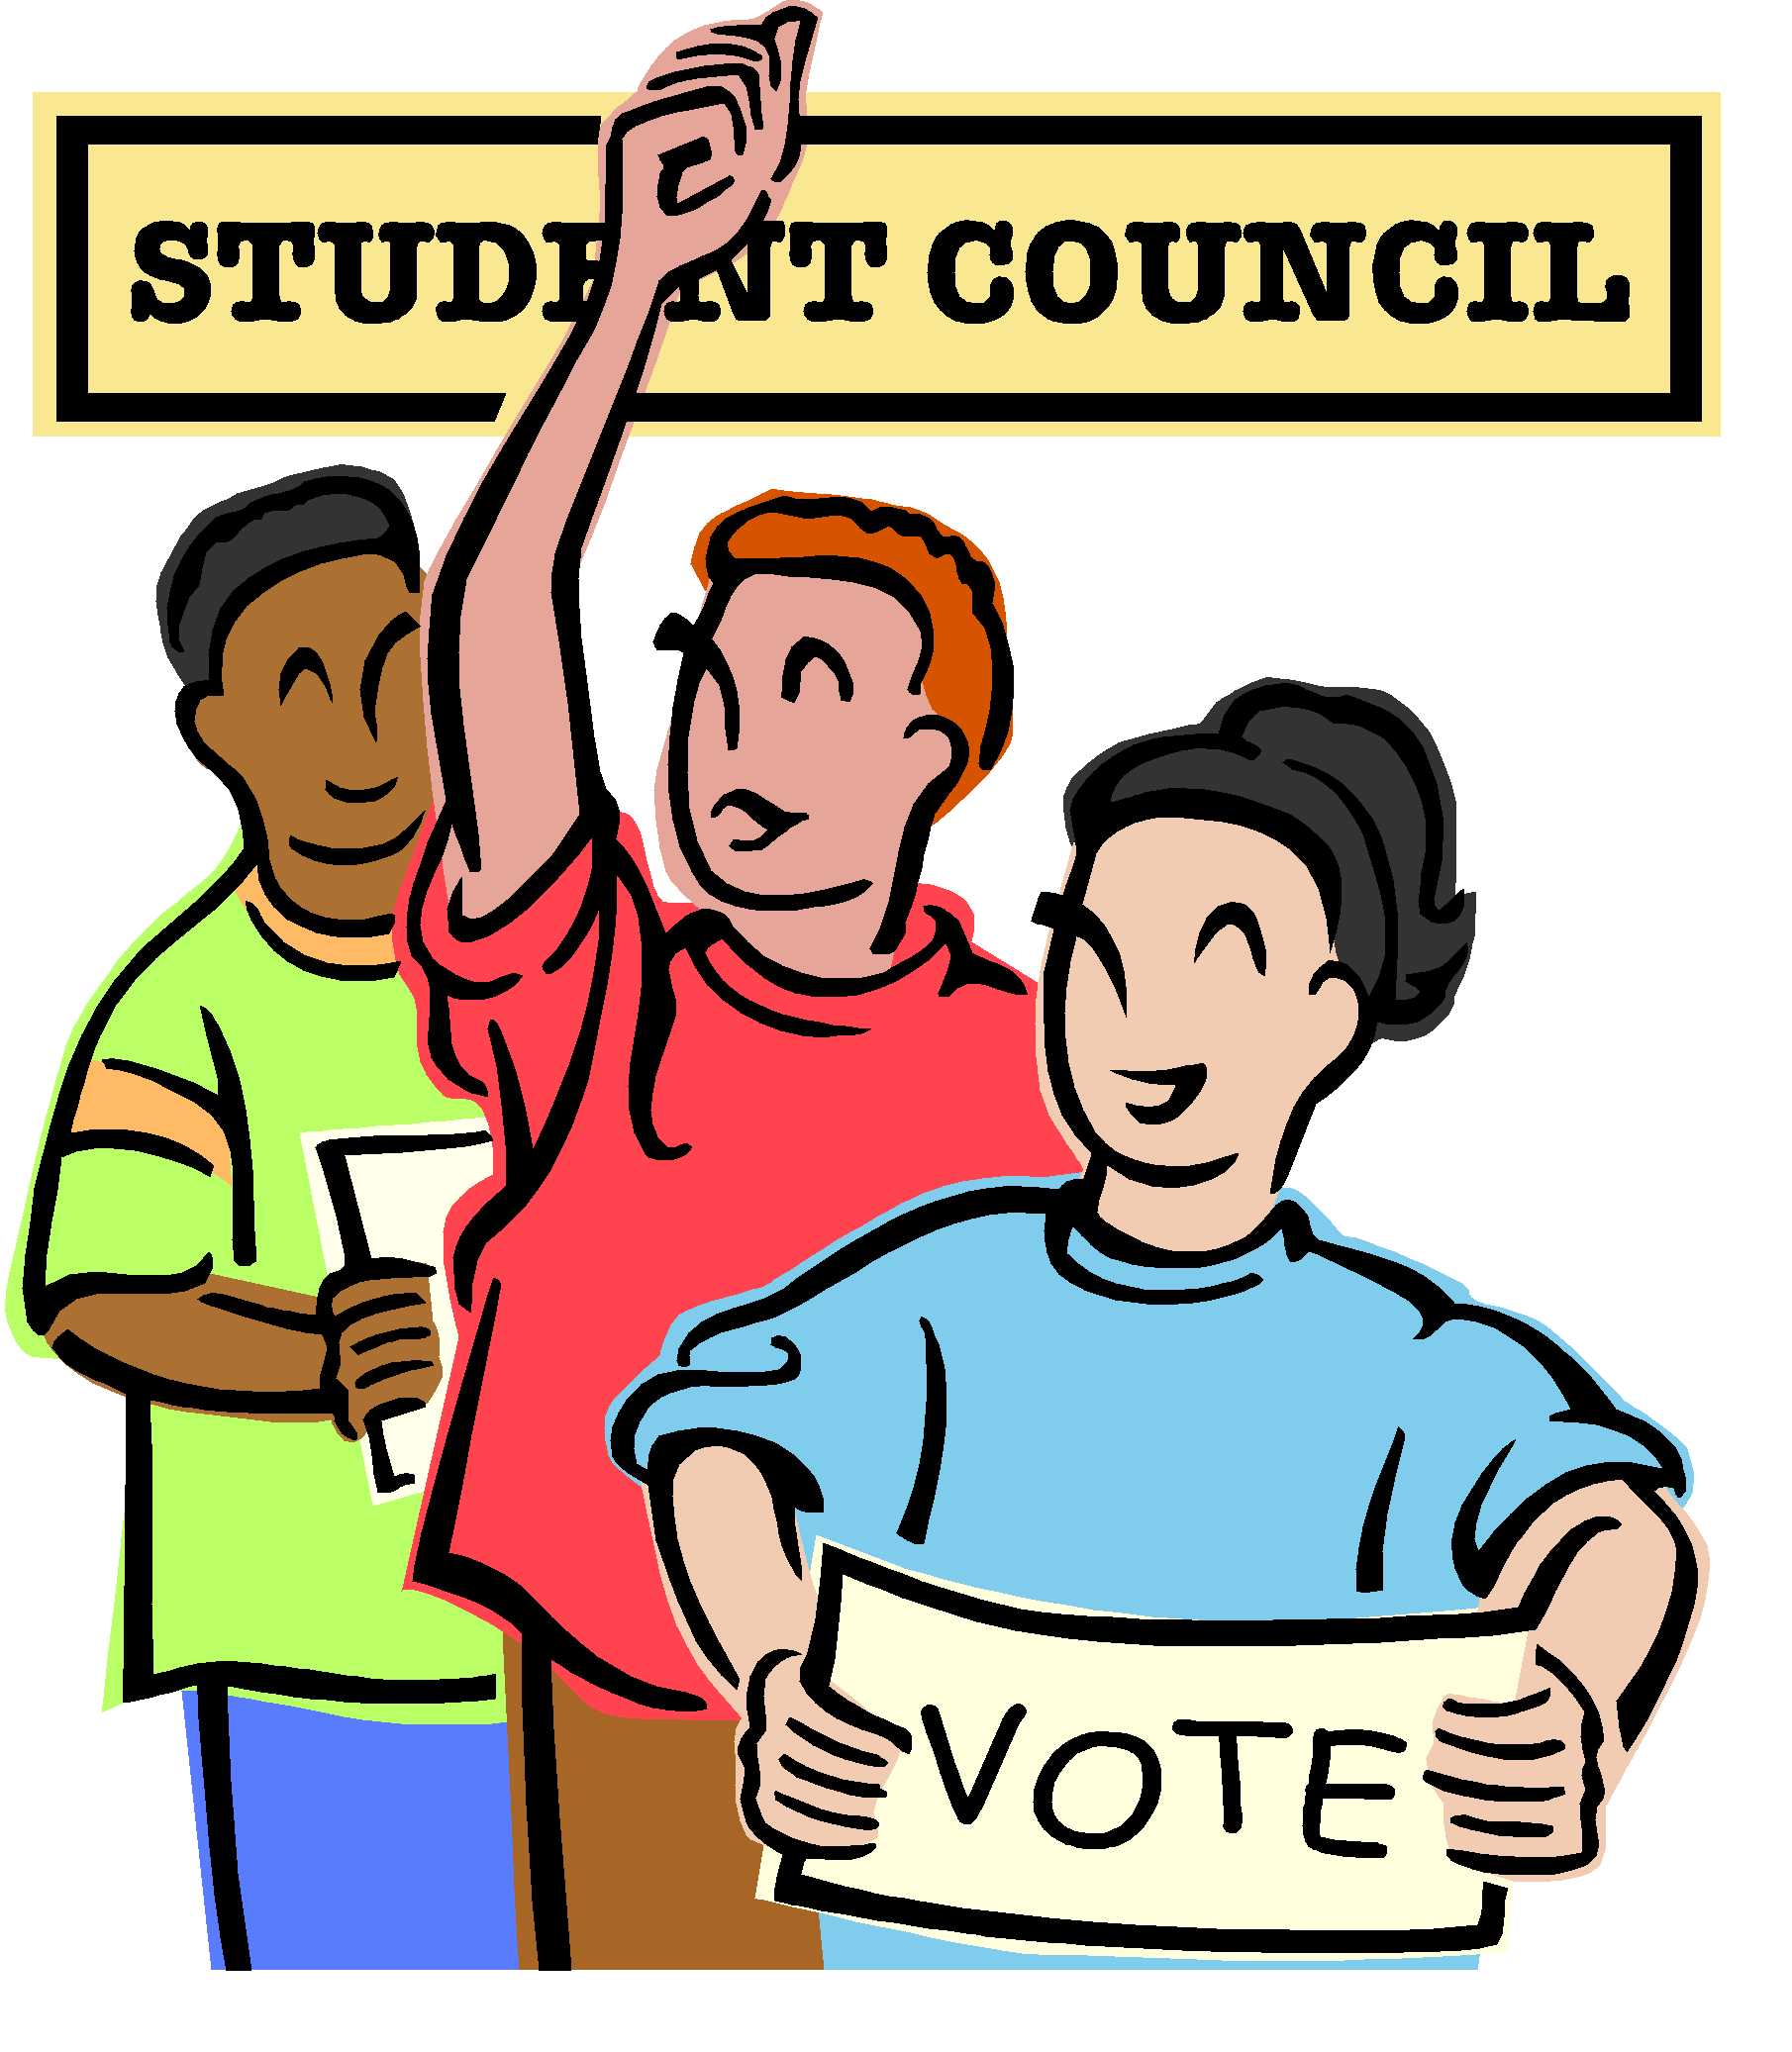 Student Council Clipart People Qualifications.